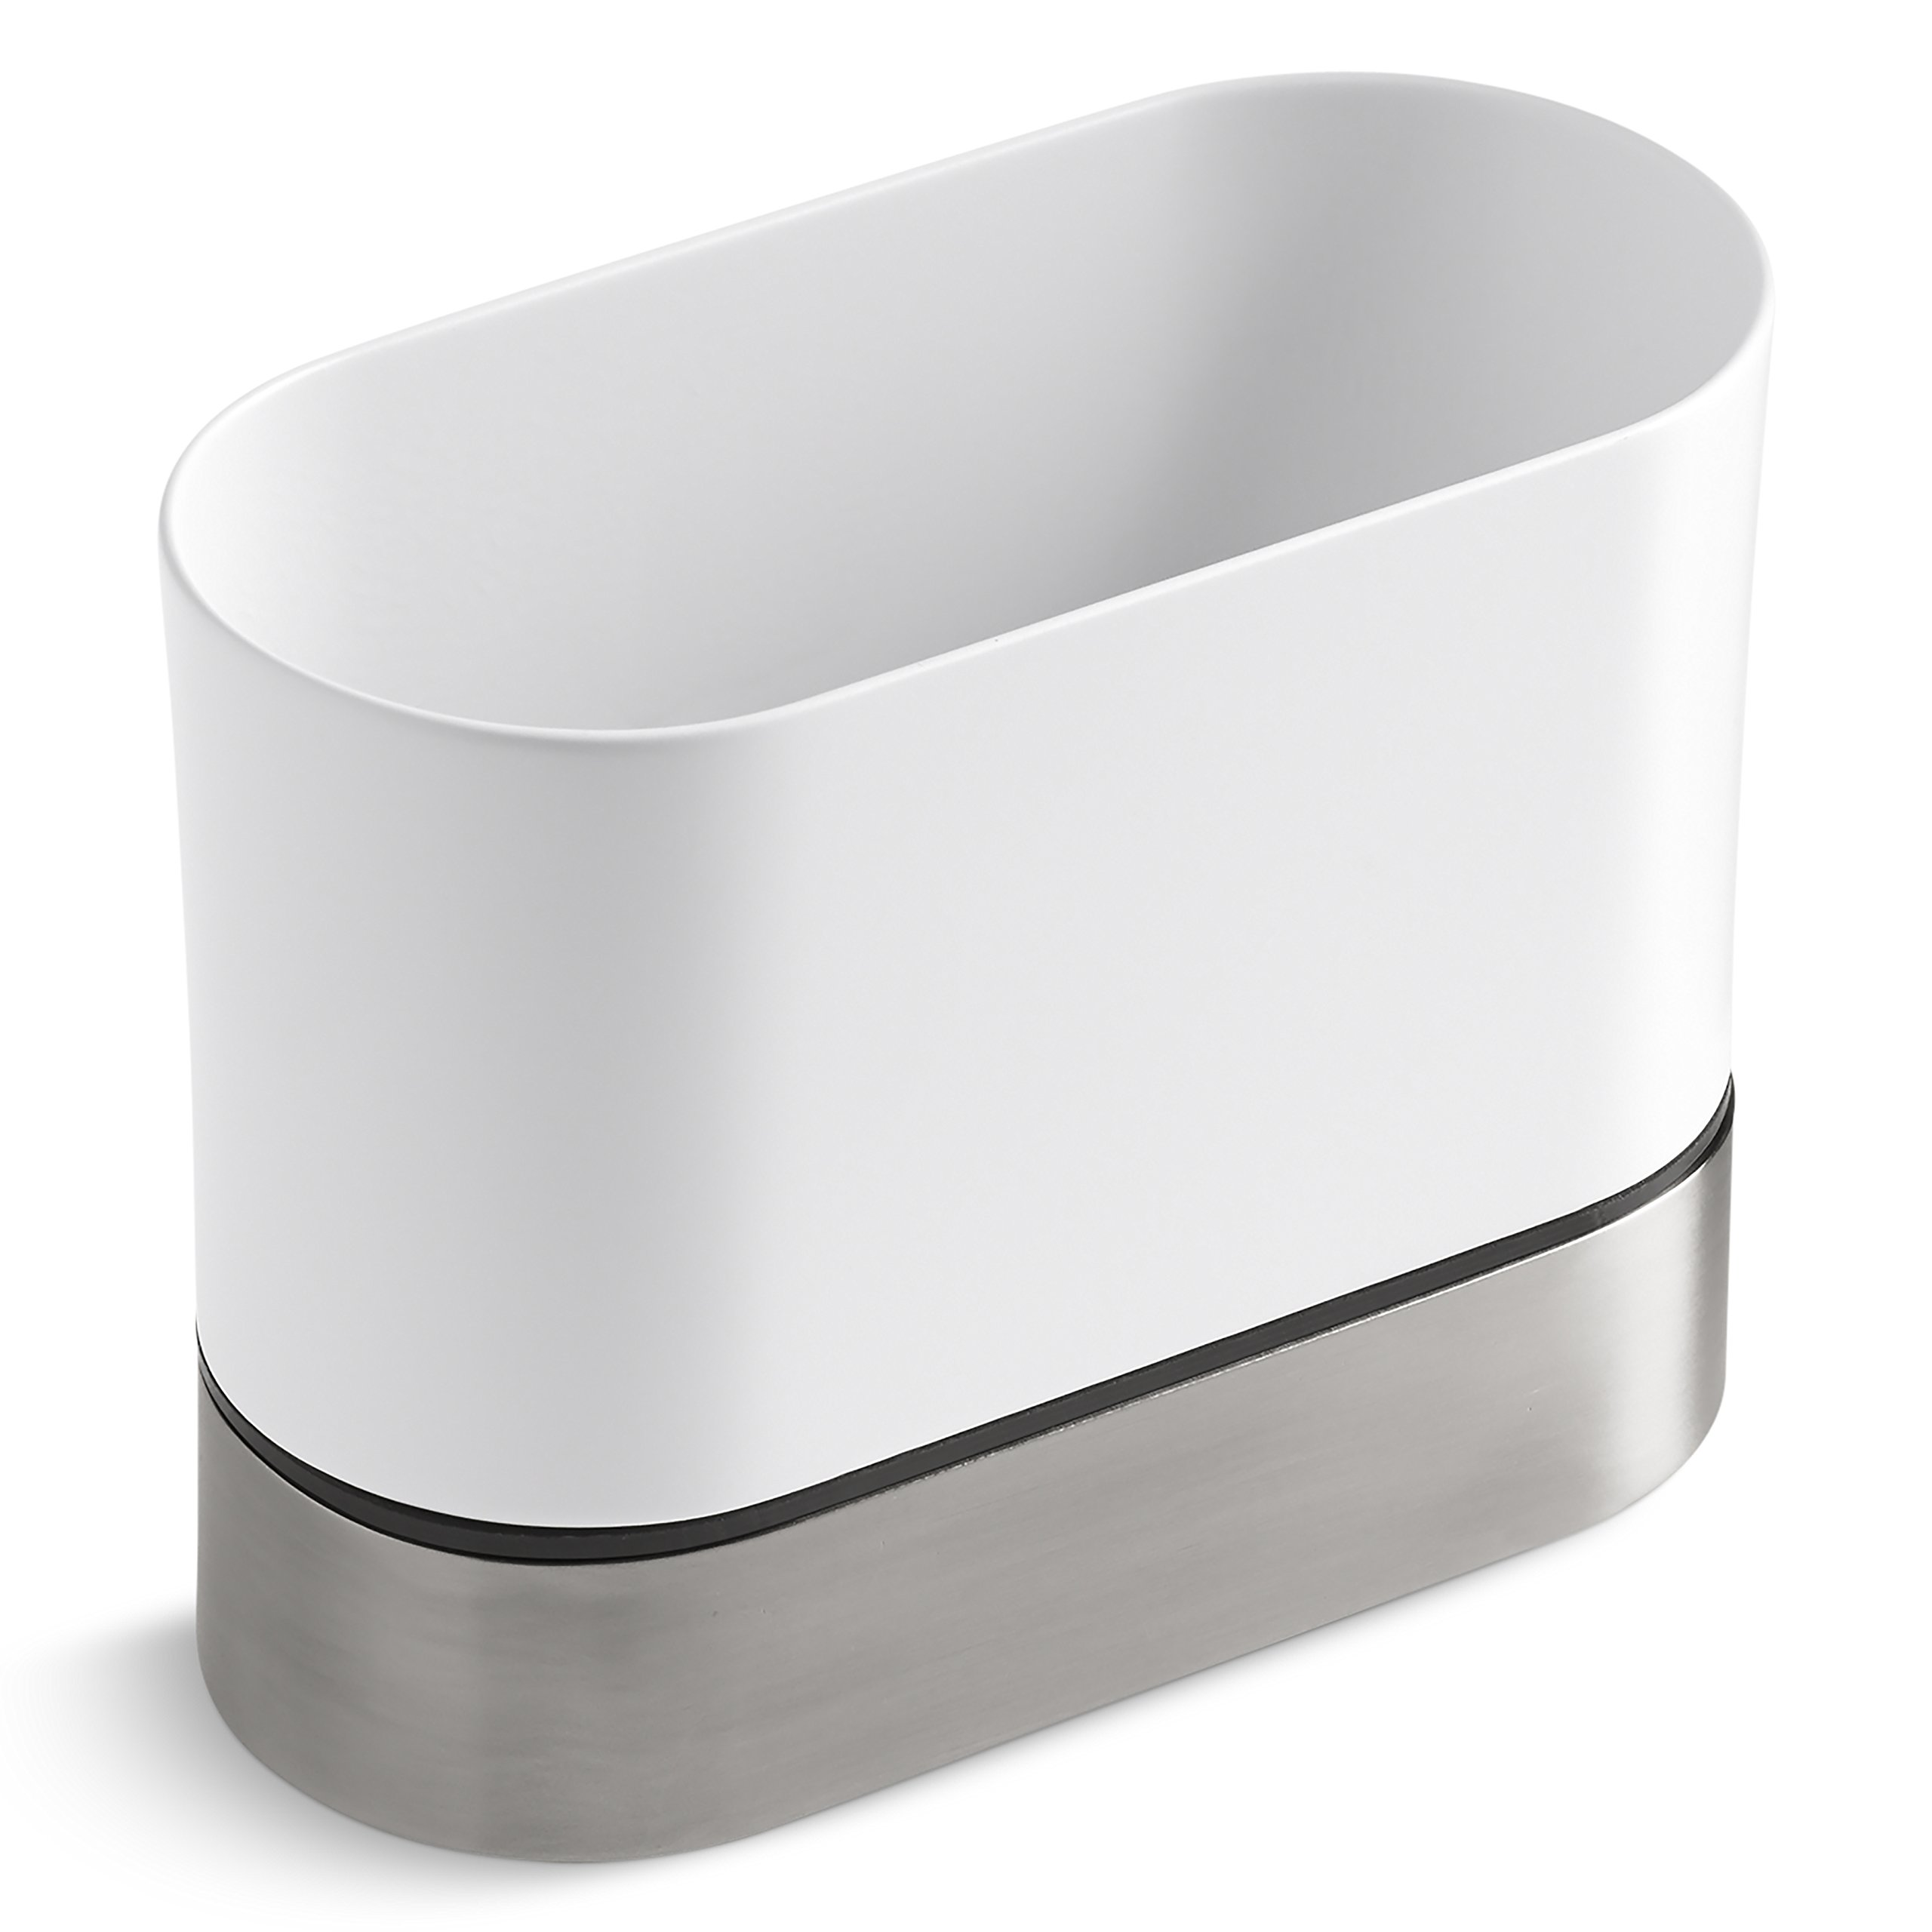 KOHLER Kitchen Dish Brush Holder, Sink Caddy, Silicone and Stainless ...